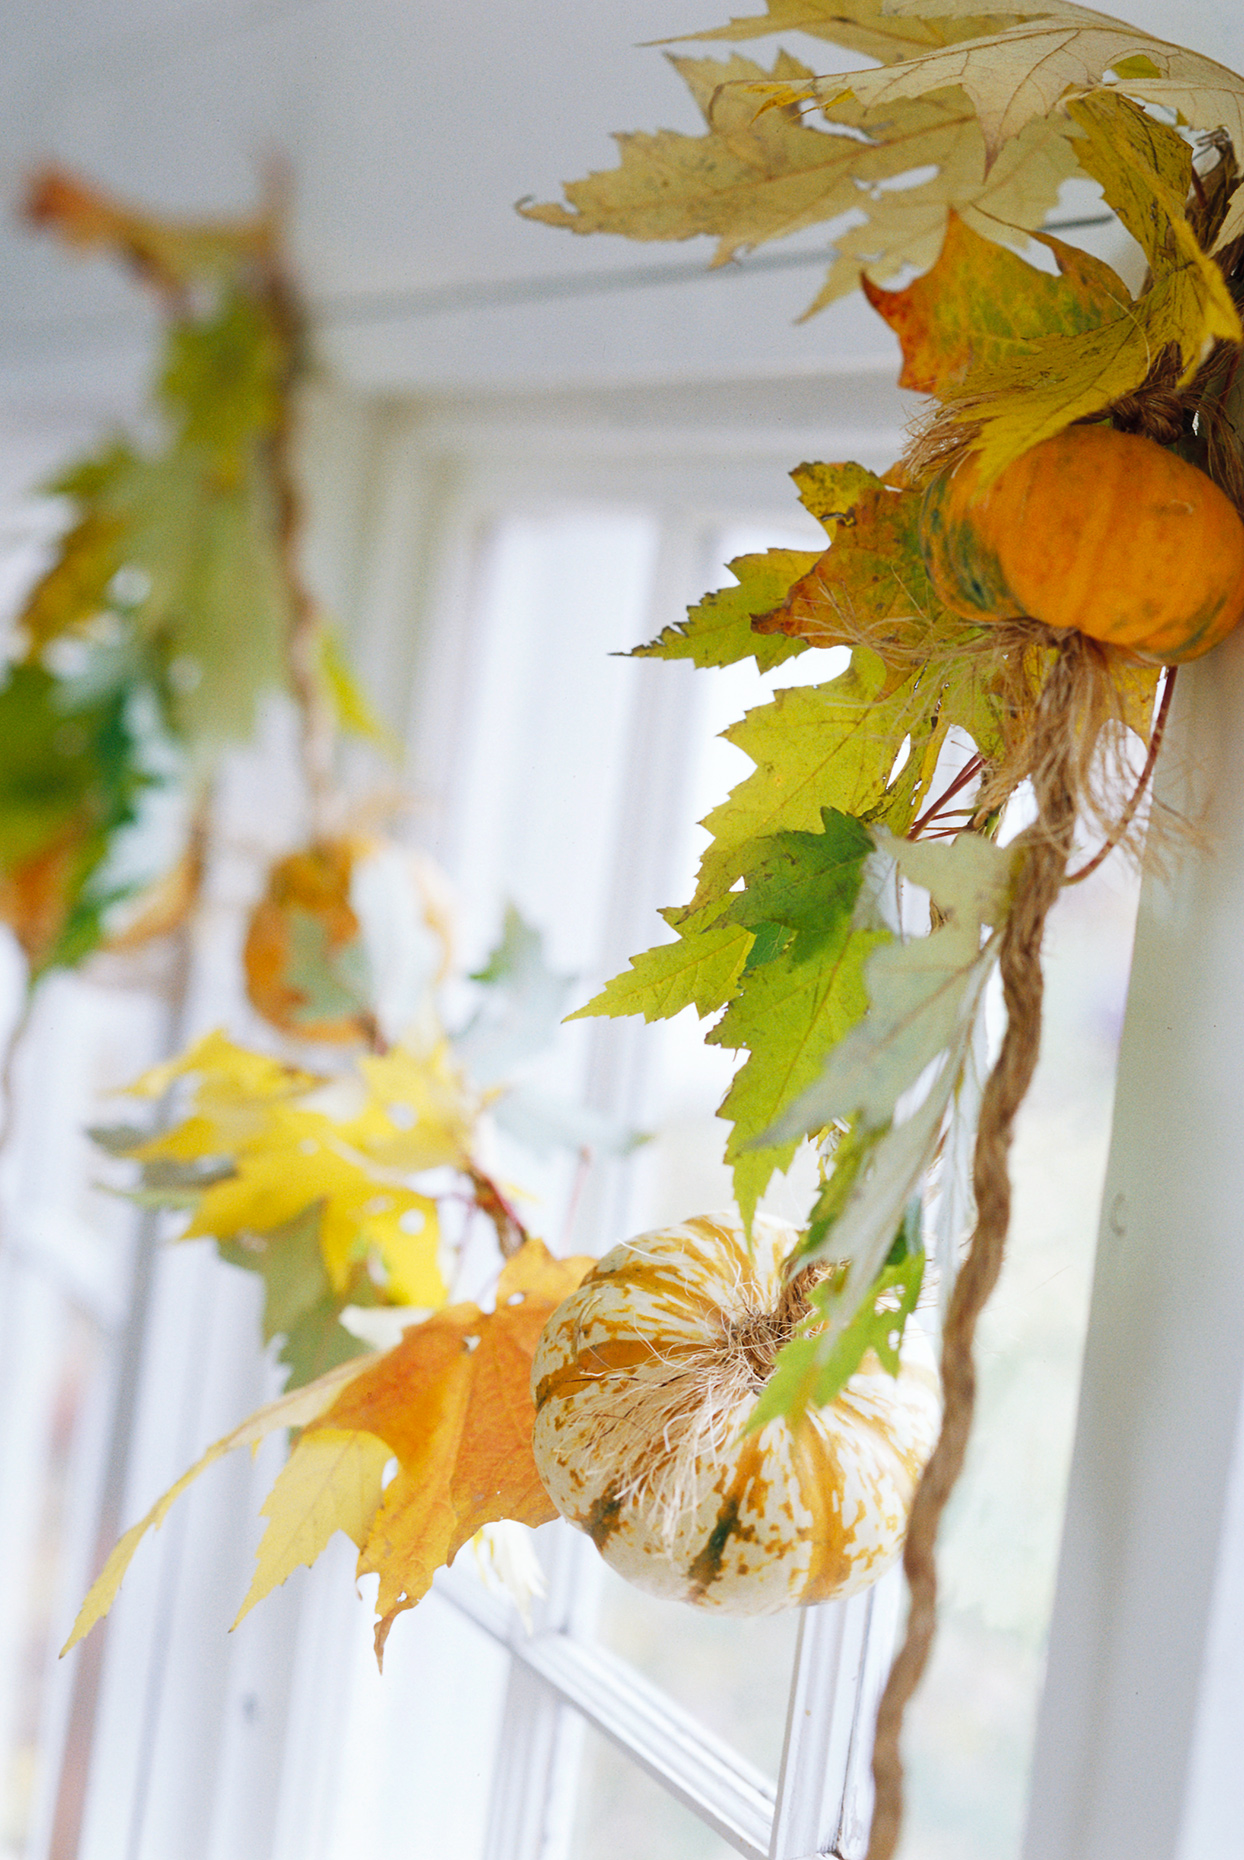 garland of leaves and gourds framing window